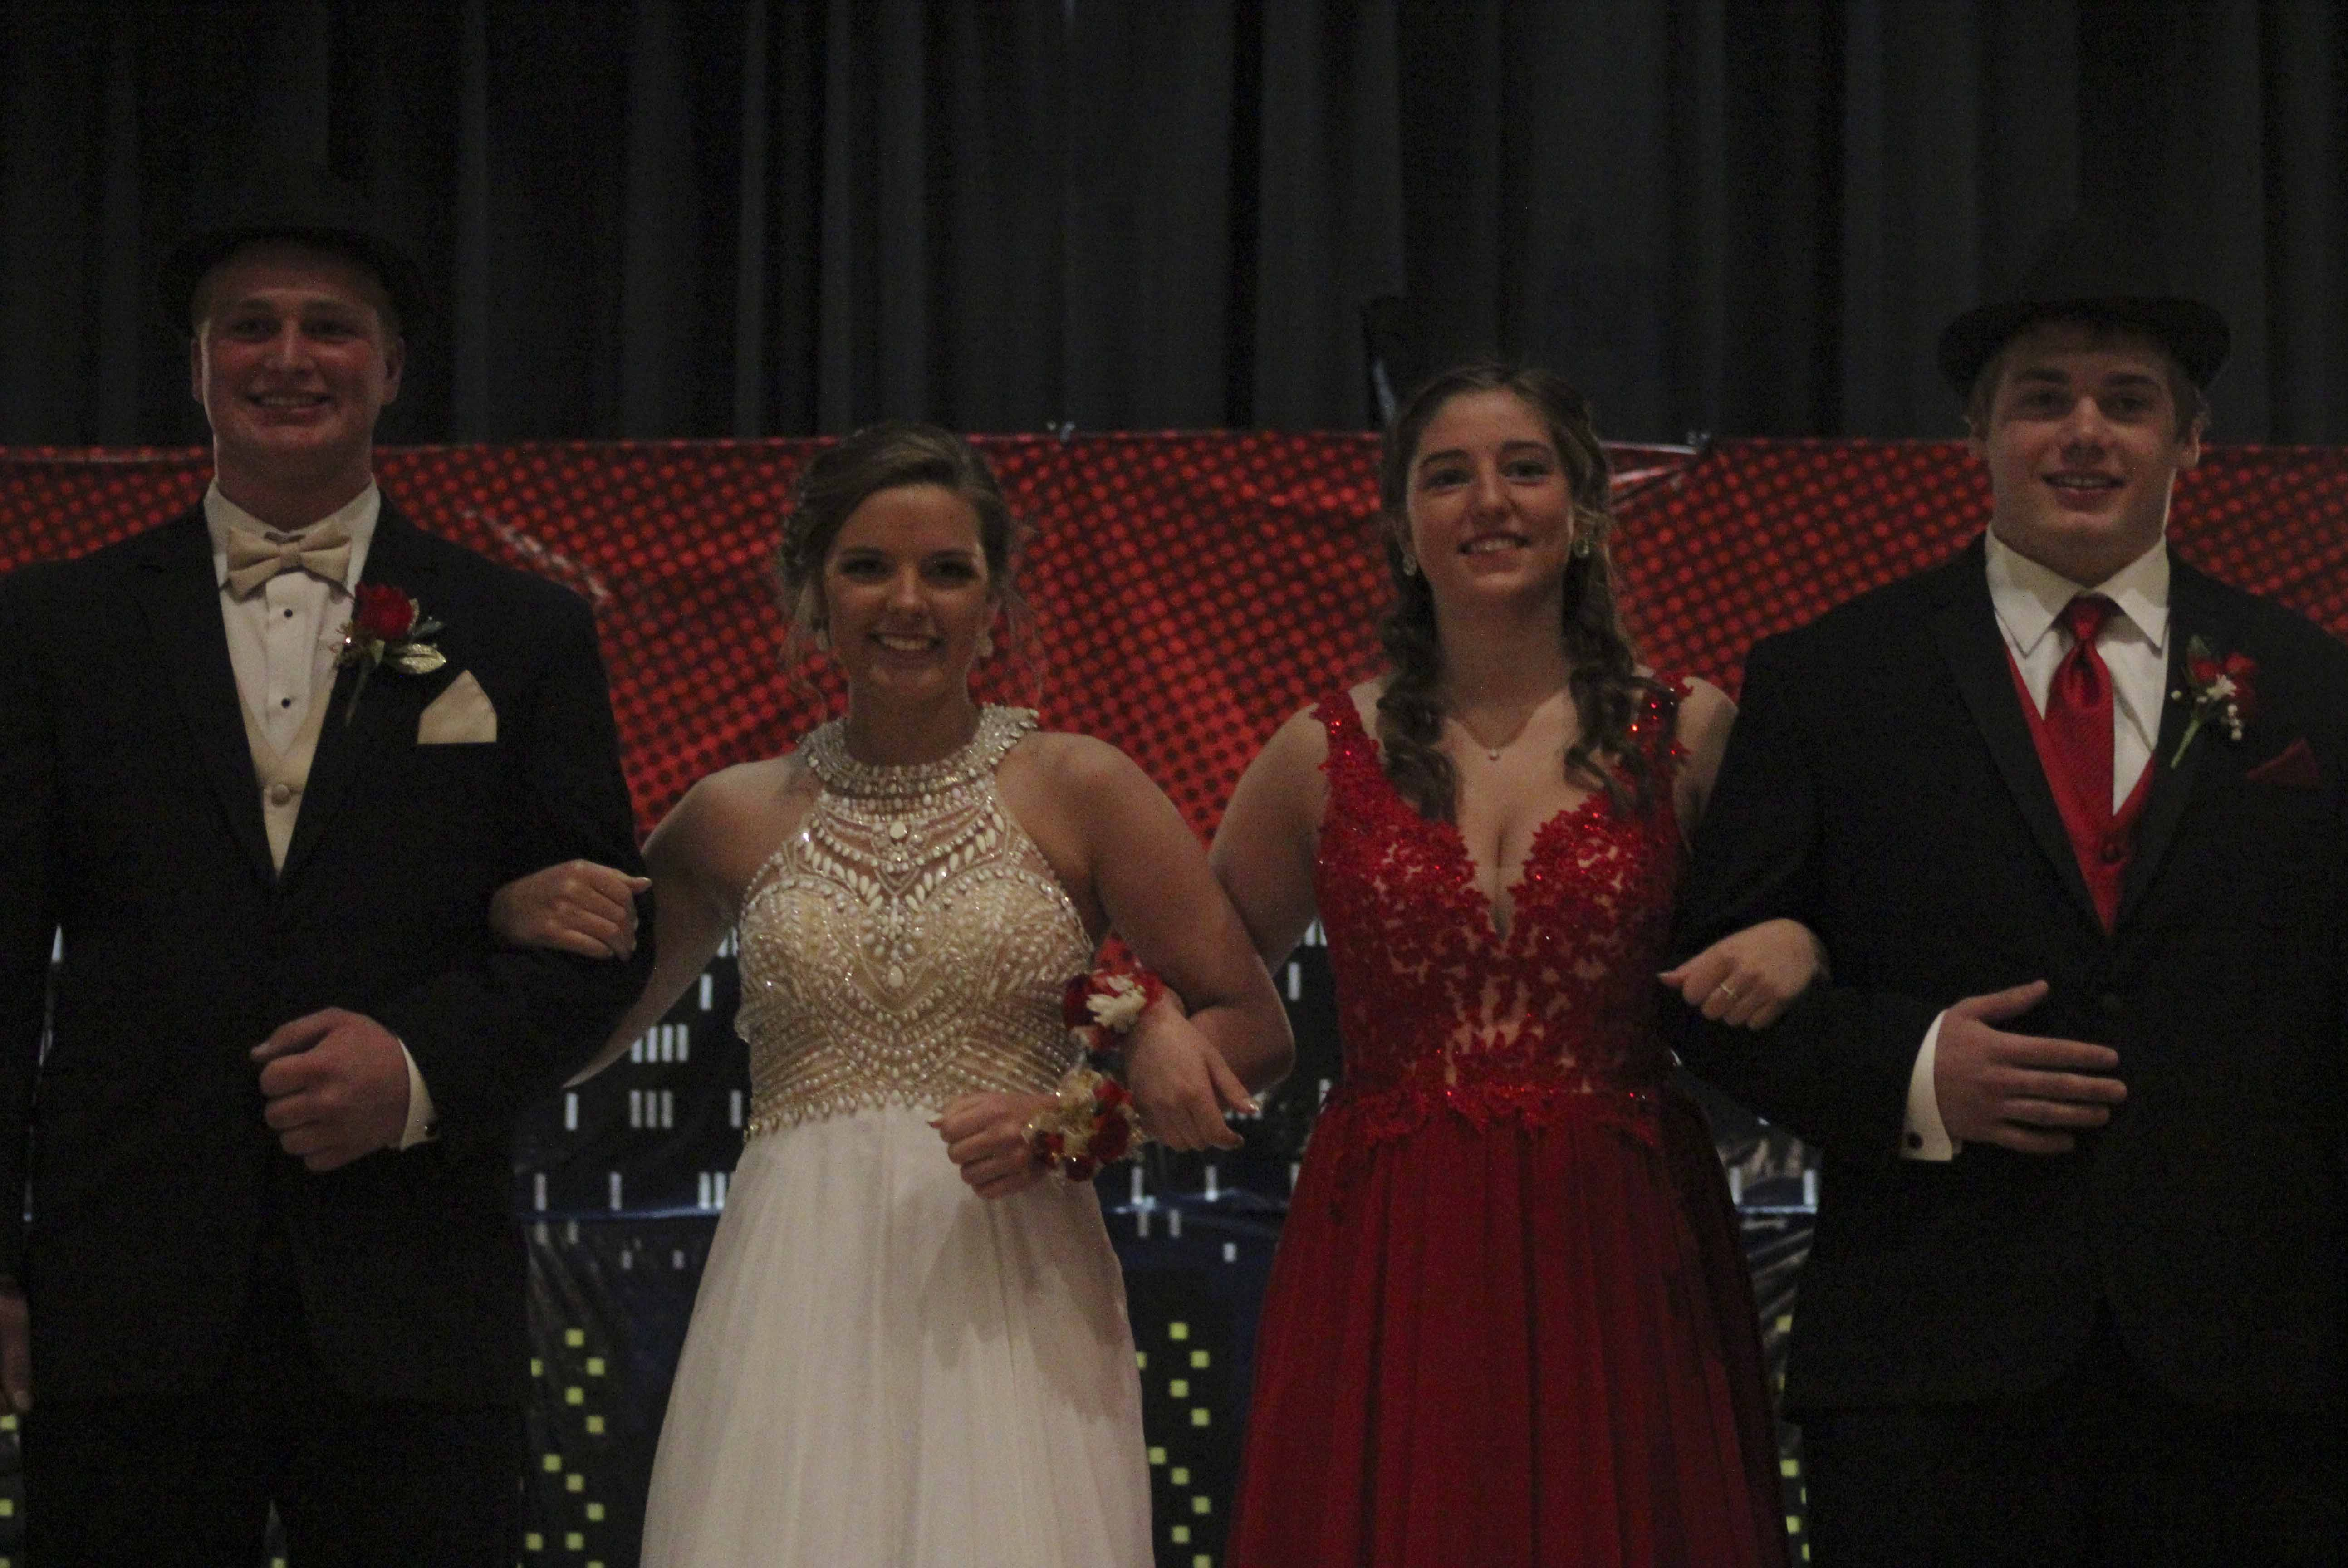 Prom 2018 for Monticello High School was held Saturday, April 21, and began with the Grand March in the MHS Auditorium. Among those taking the stage were, from left: Wade Picray, Lauren Shady, Marissa Recker and Lake Stahlberg. (Photos by Pete Temple)